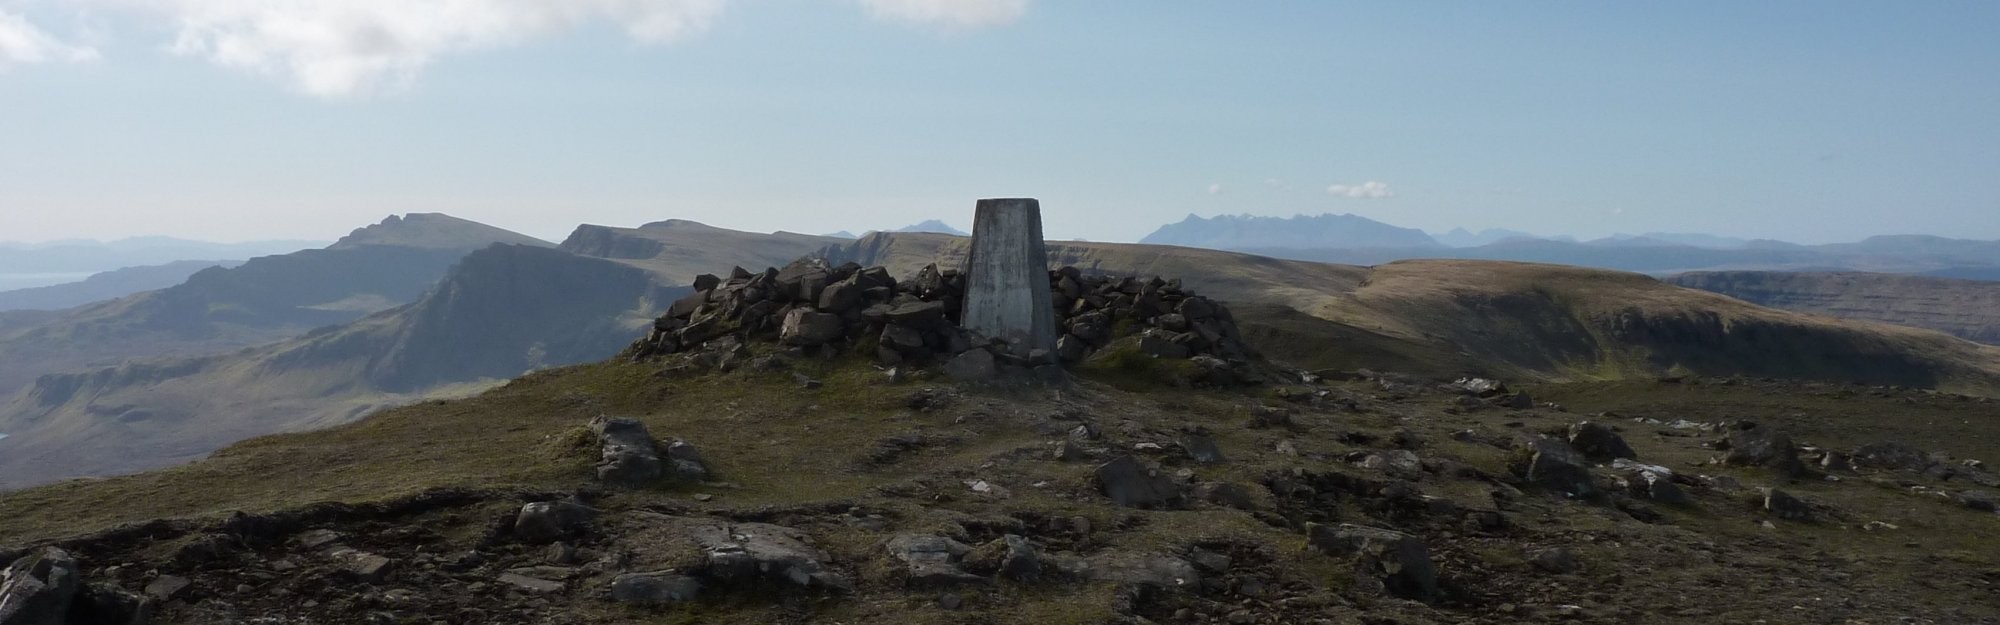 Trig point and shelter on summit of Beinn Edra, with the Storr far left behind